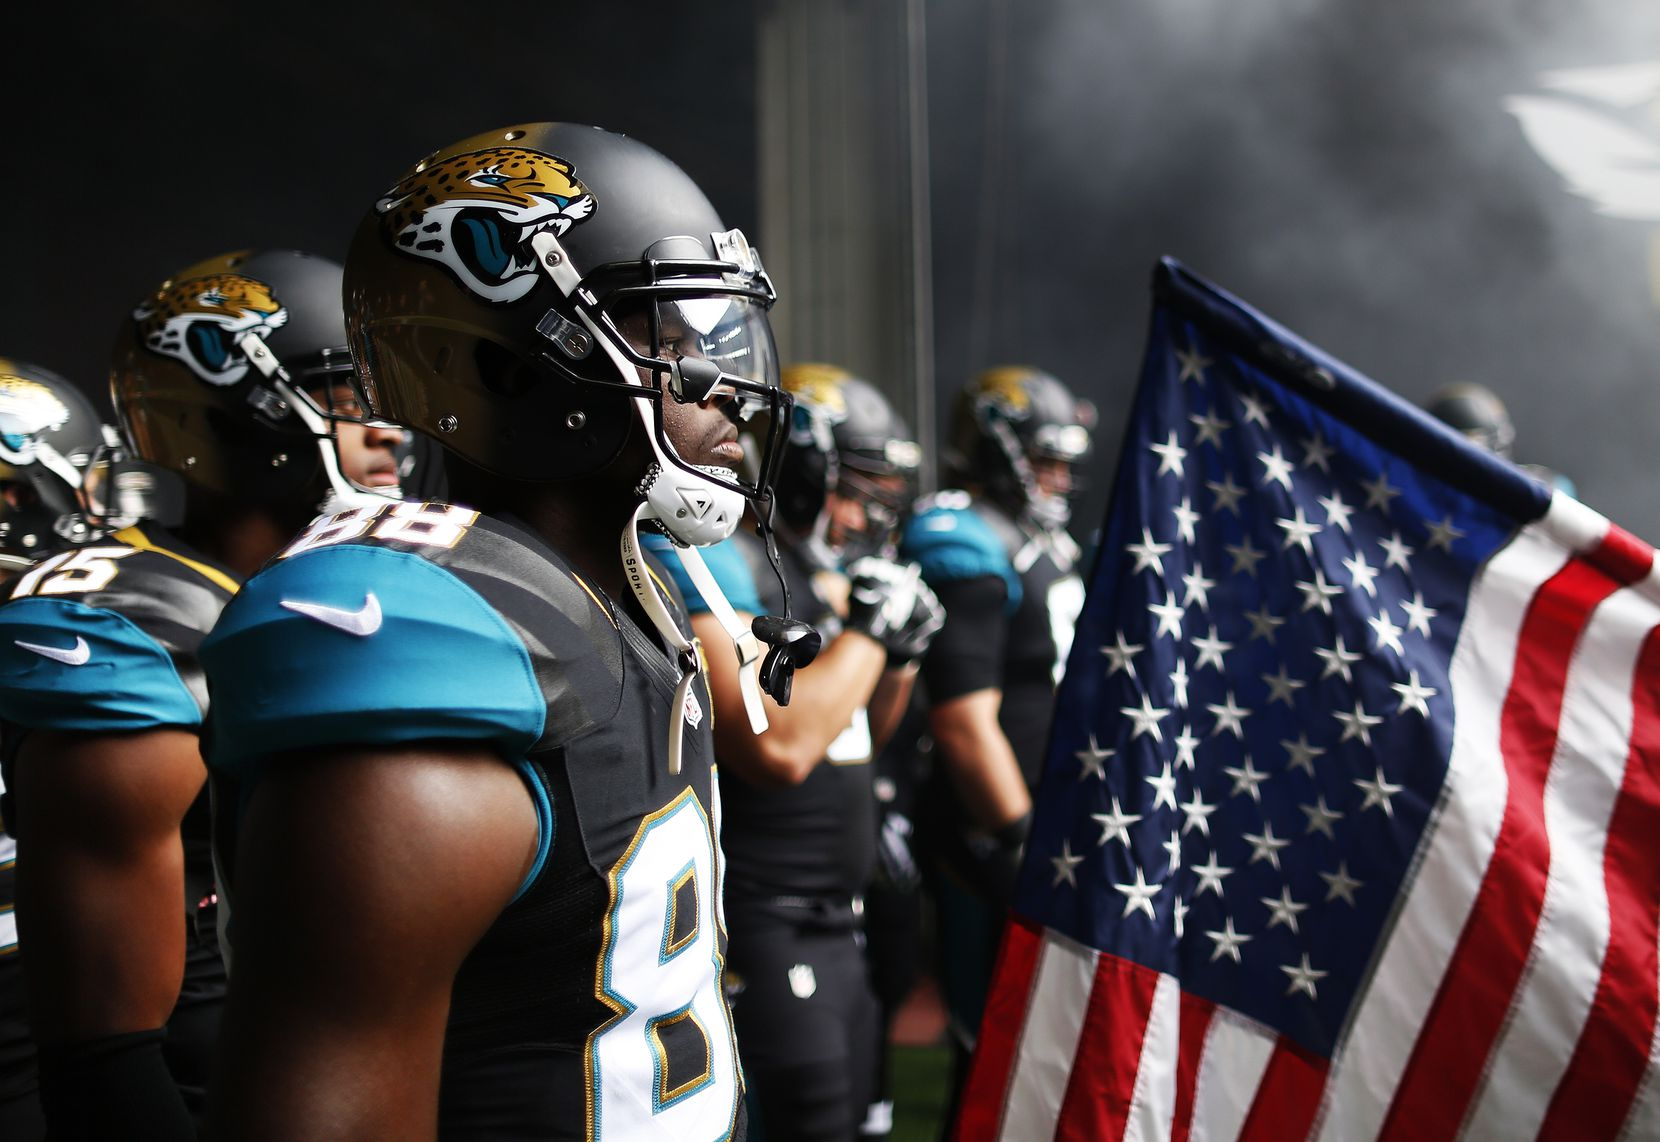 LONDON, ENGLAND - OCTOBER 25: #88 Allen Hurns of Jacksonville Jaguars waits to go onto the pitch during the NFL game between Jacksonville Jaguars and Buffalo Bills at Wembley Stadium on October 25, 2015 in London, England. (Photo by Alan Crowhurst/Getty Images)